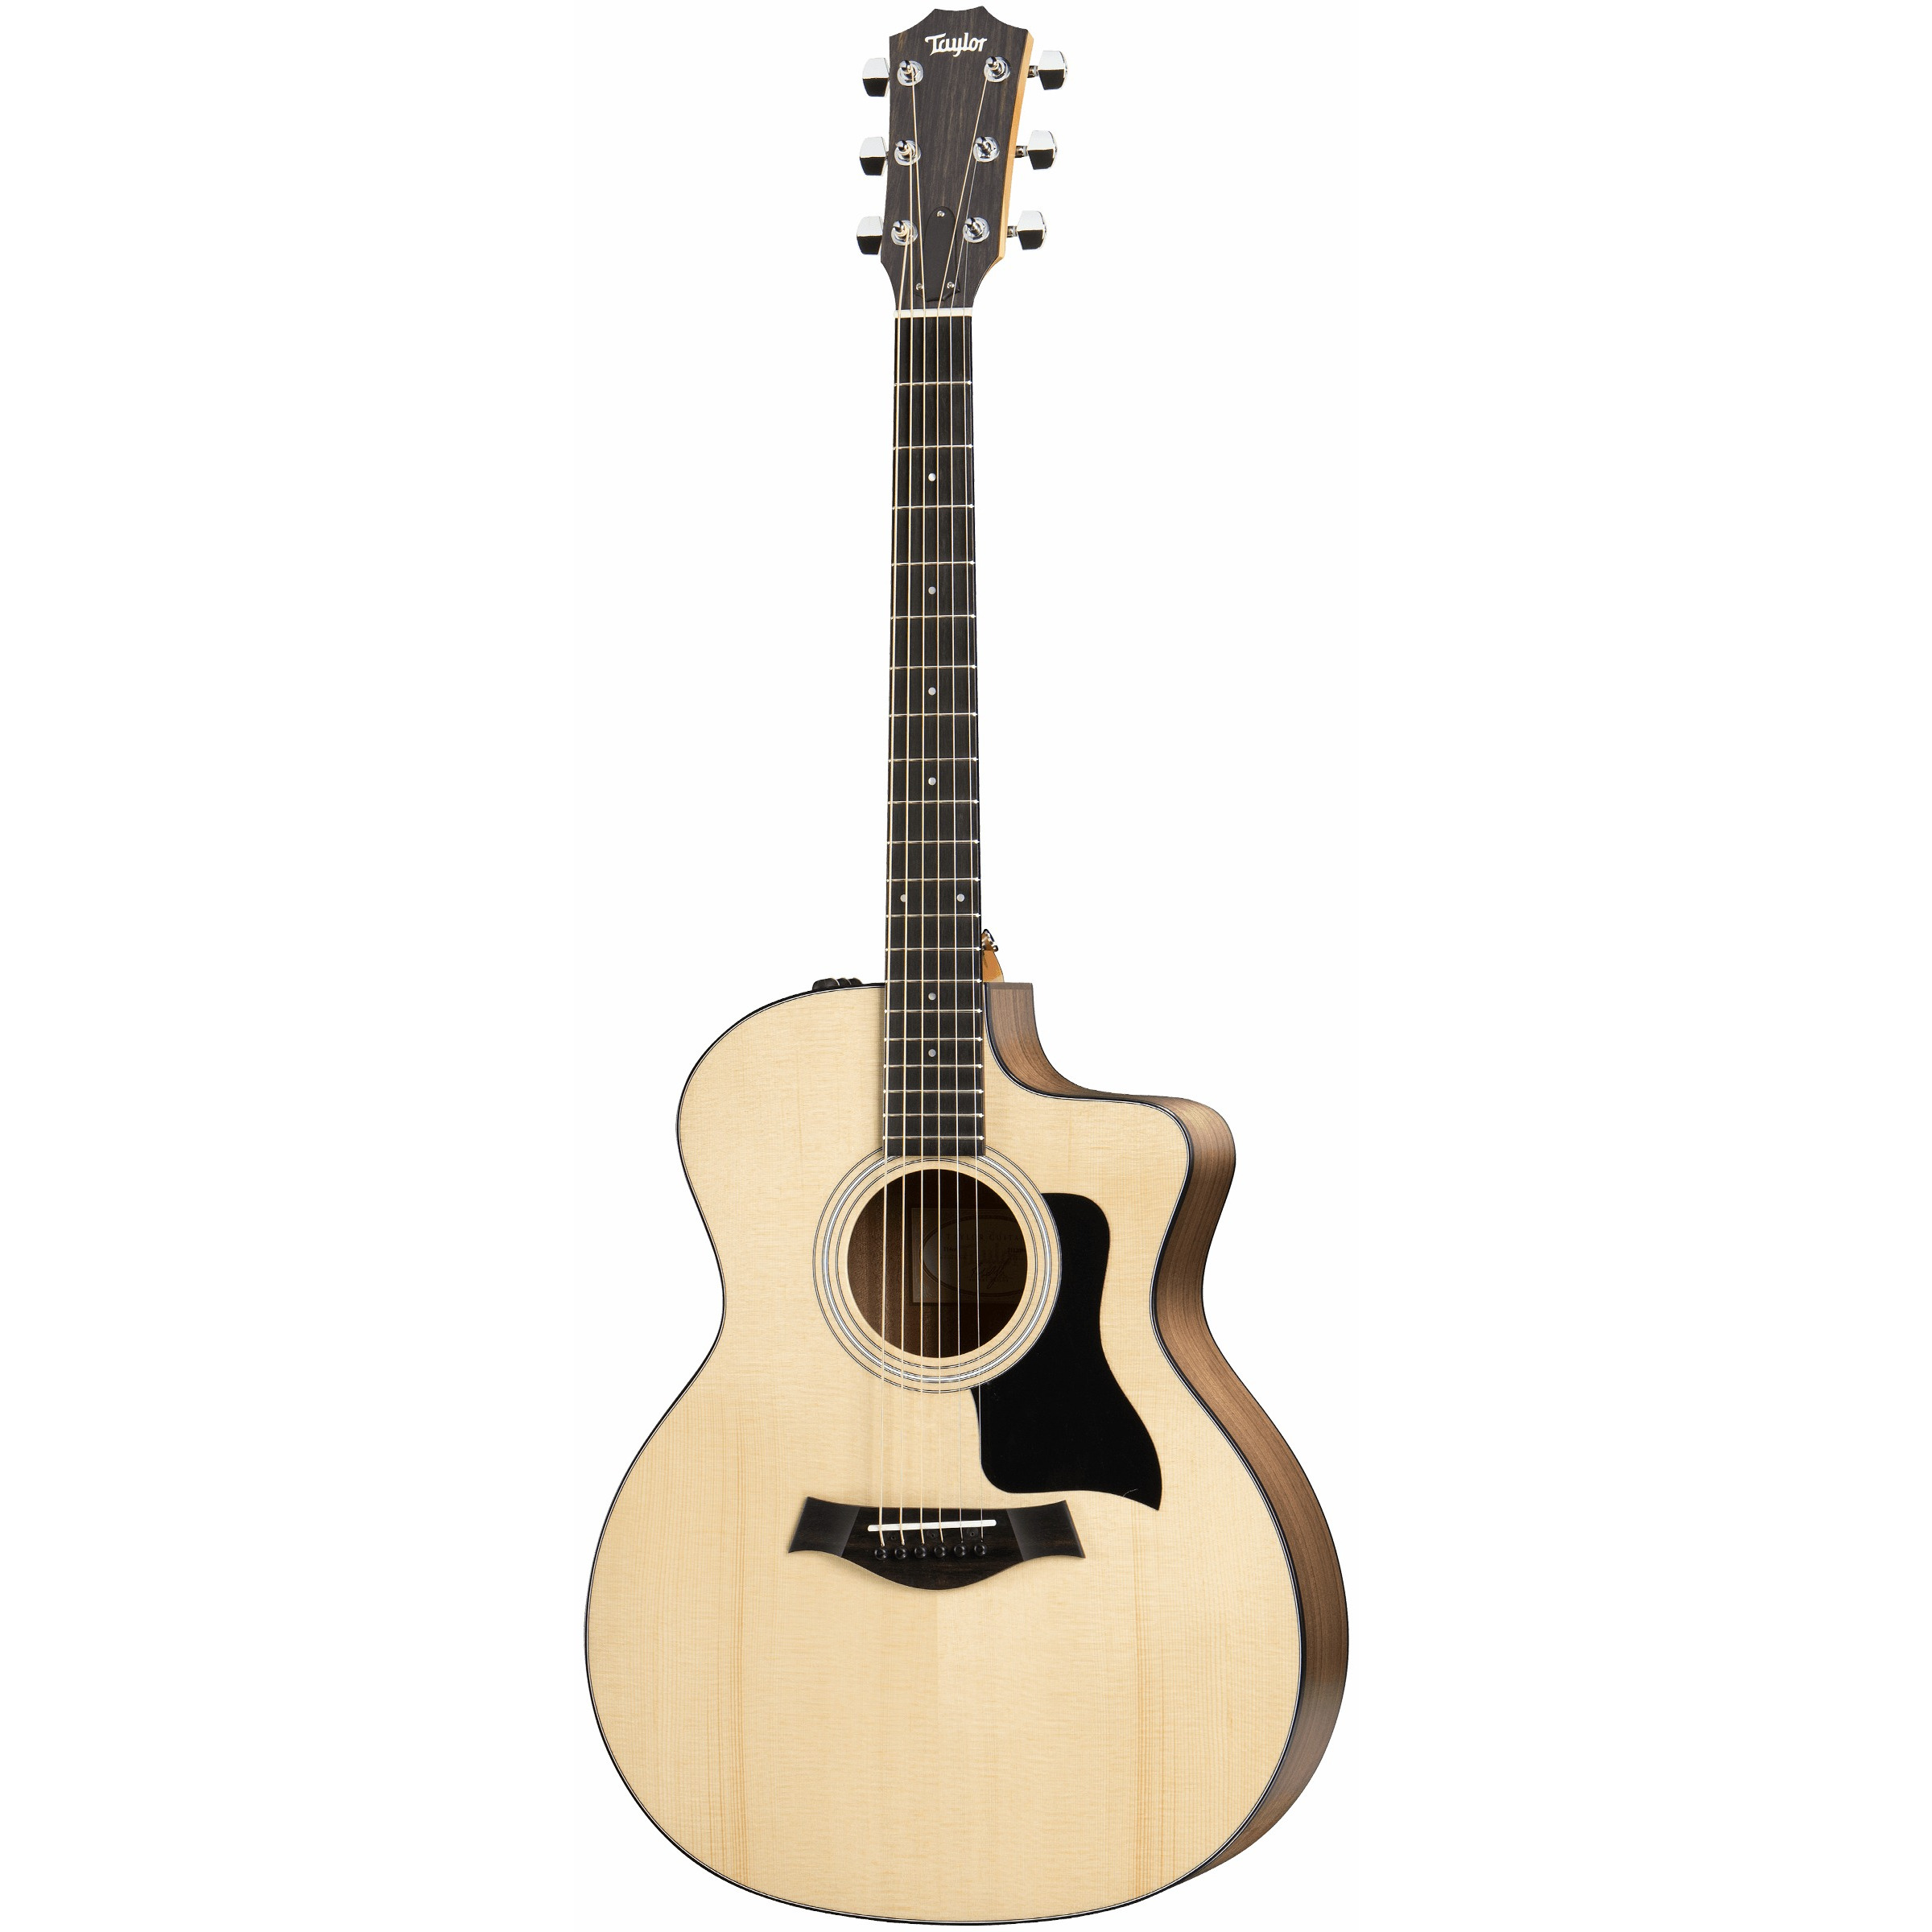 taylor 114ce grand auditorium cutaway electro acoustic giggear. Black Bedroom Furniture Sets. Home Design Ideas